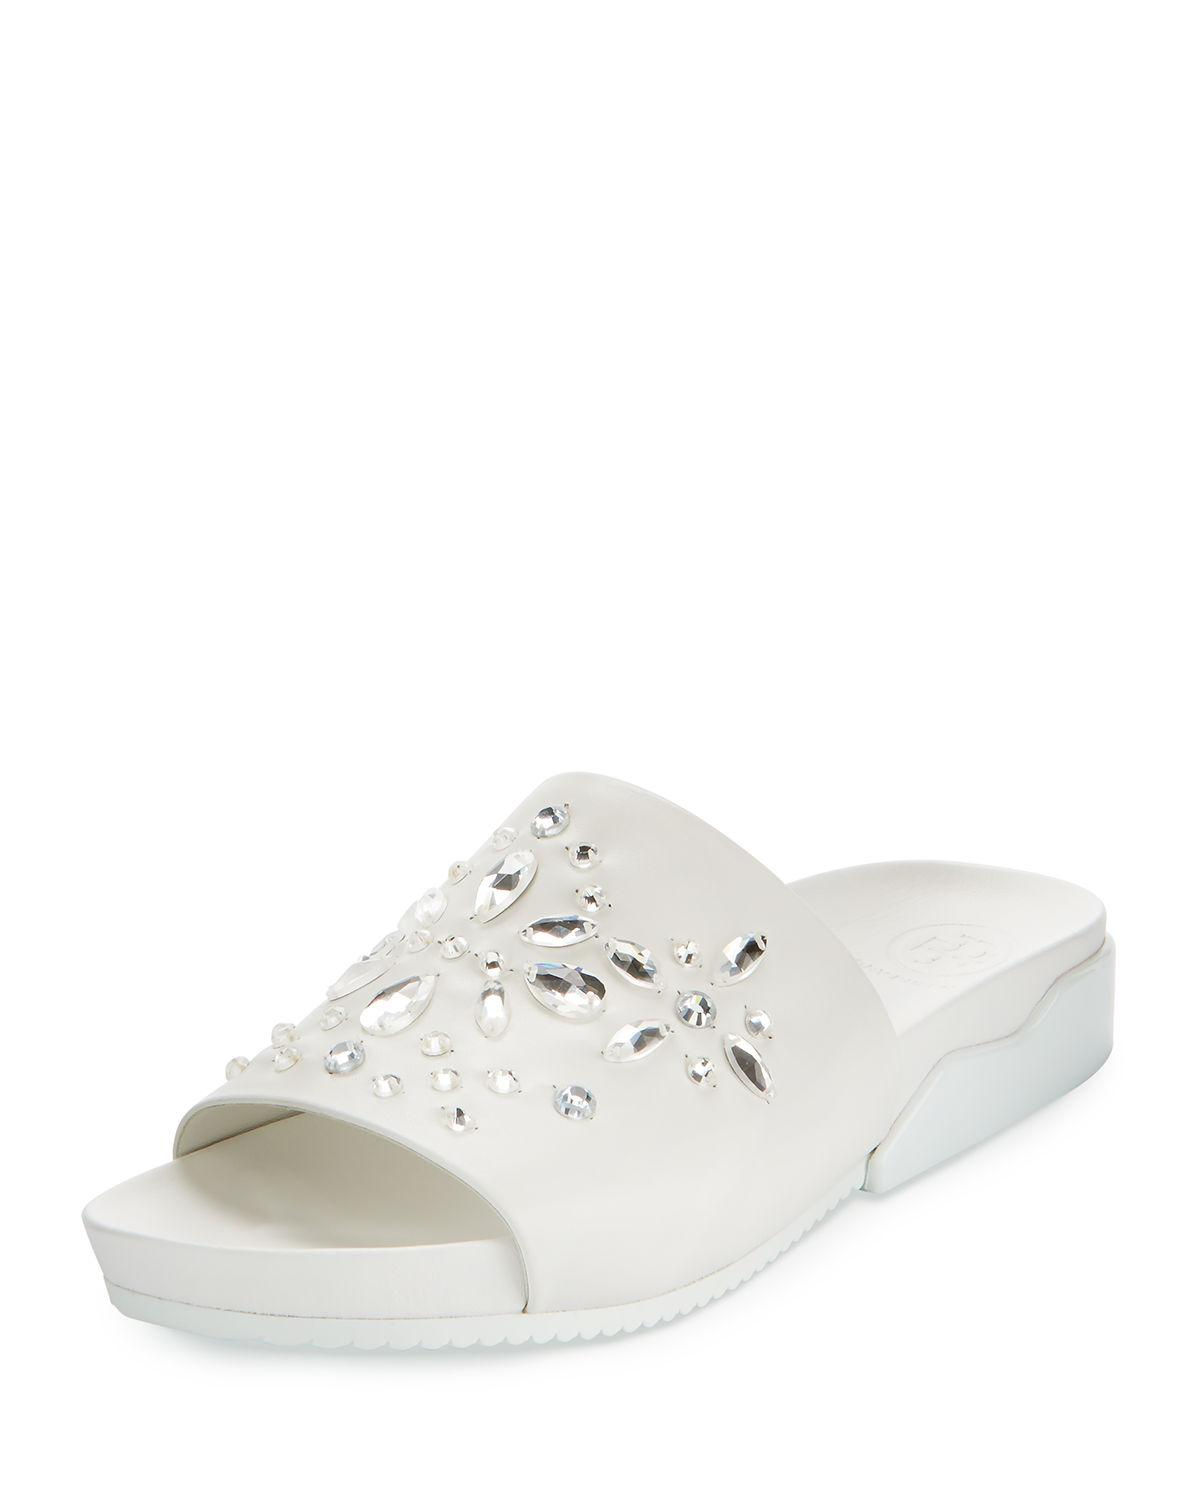 fa05a5b3d875 Lyst - Tory Burch Brae Crystal Leather Slide Sandal in White